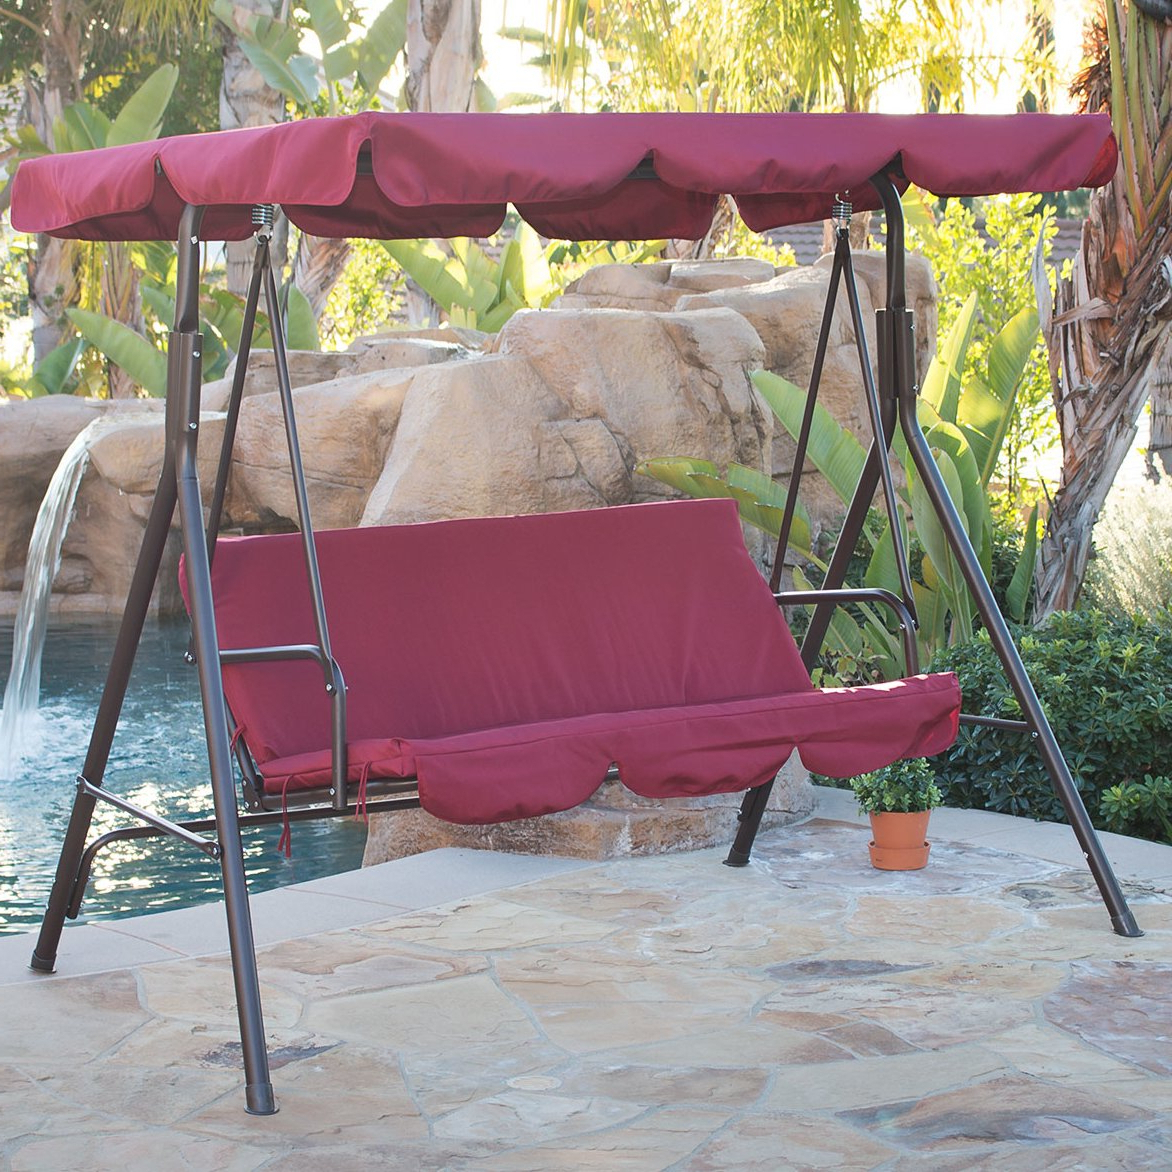 Canopy Porch Swings Within Most Popular Details About 3 Person Steel Outdoor Patio Porch Swing Chair With Stand And  Canopy Rocker (View 7 of 25)